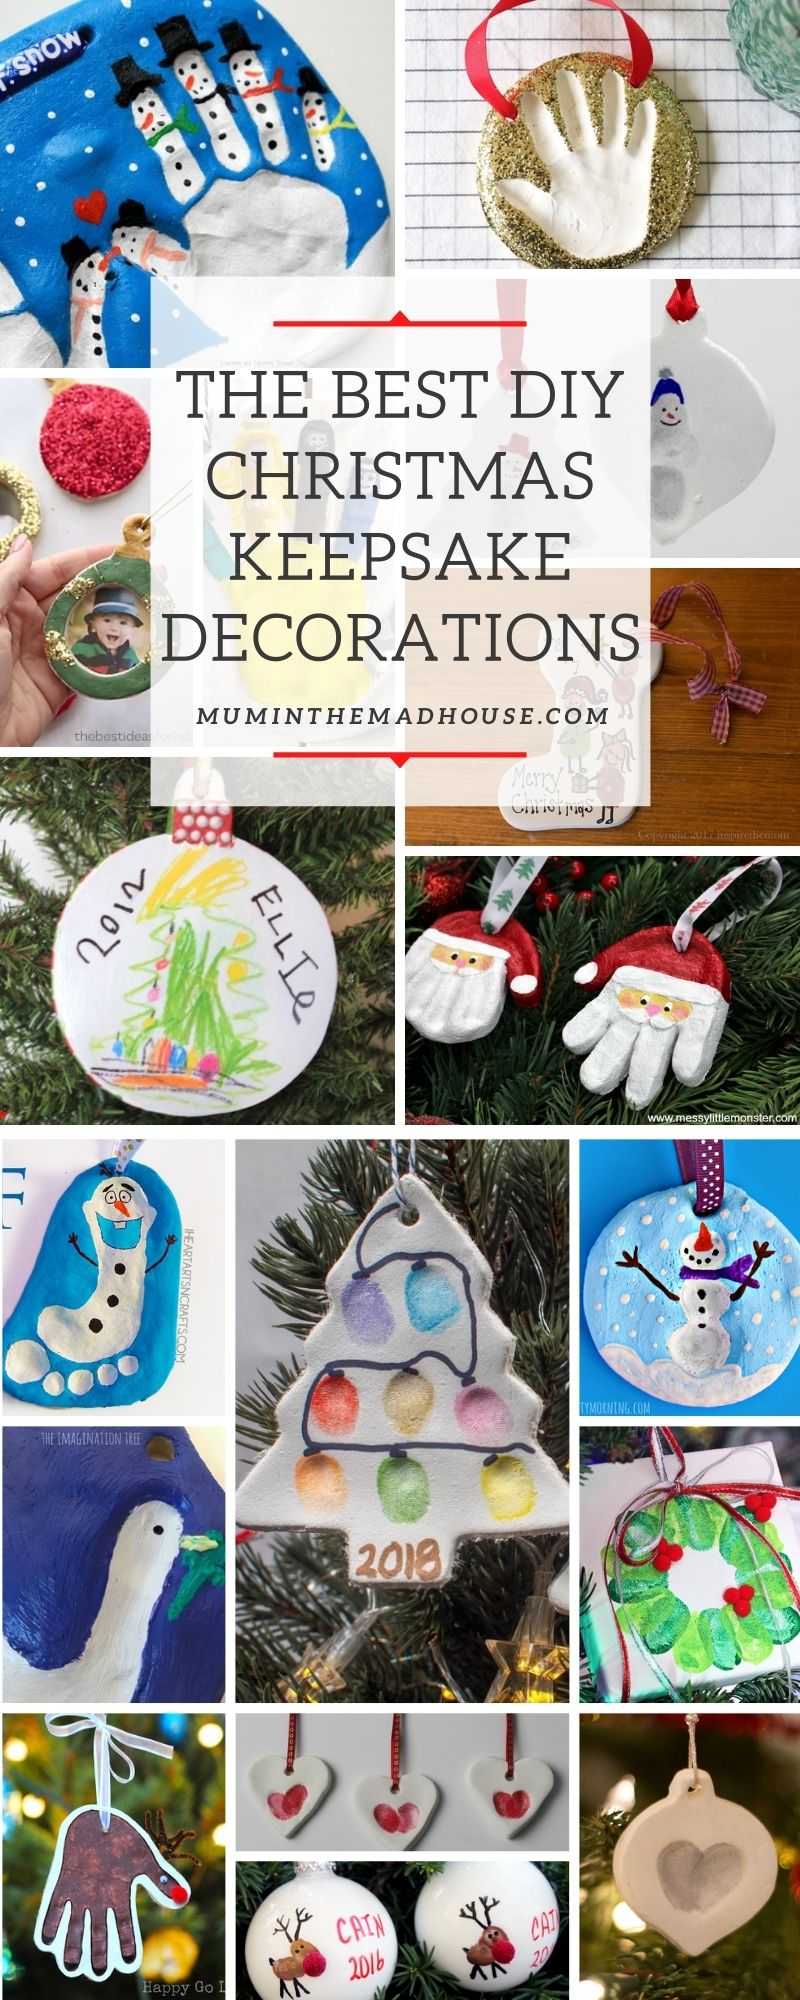 The Best DIY Christmas Keepsake Decorations that your family will cherish for years to come. These craft ornaments are beautiful and meaningful.